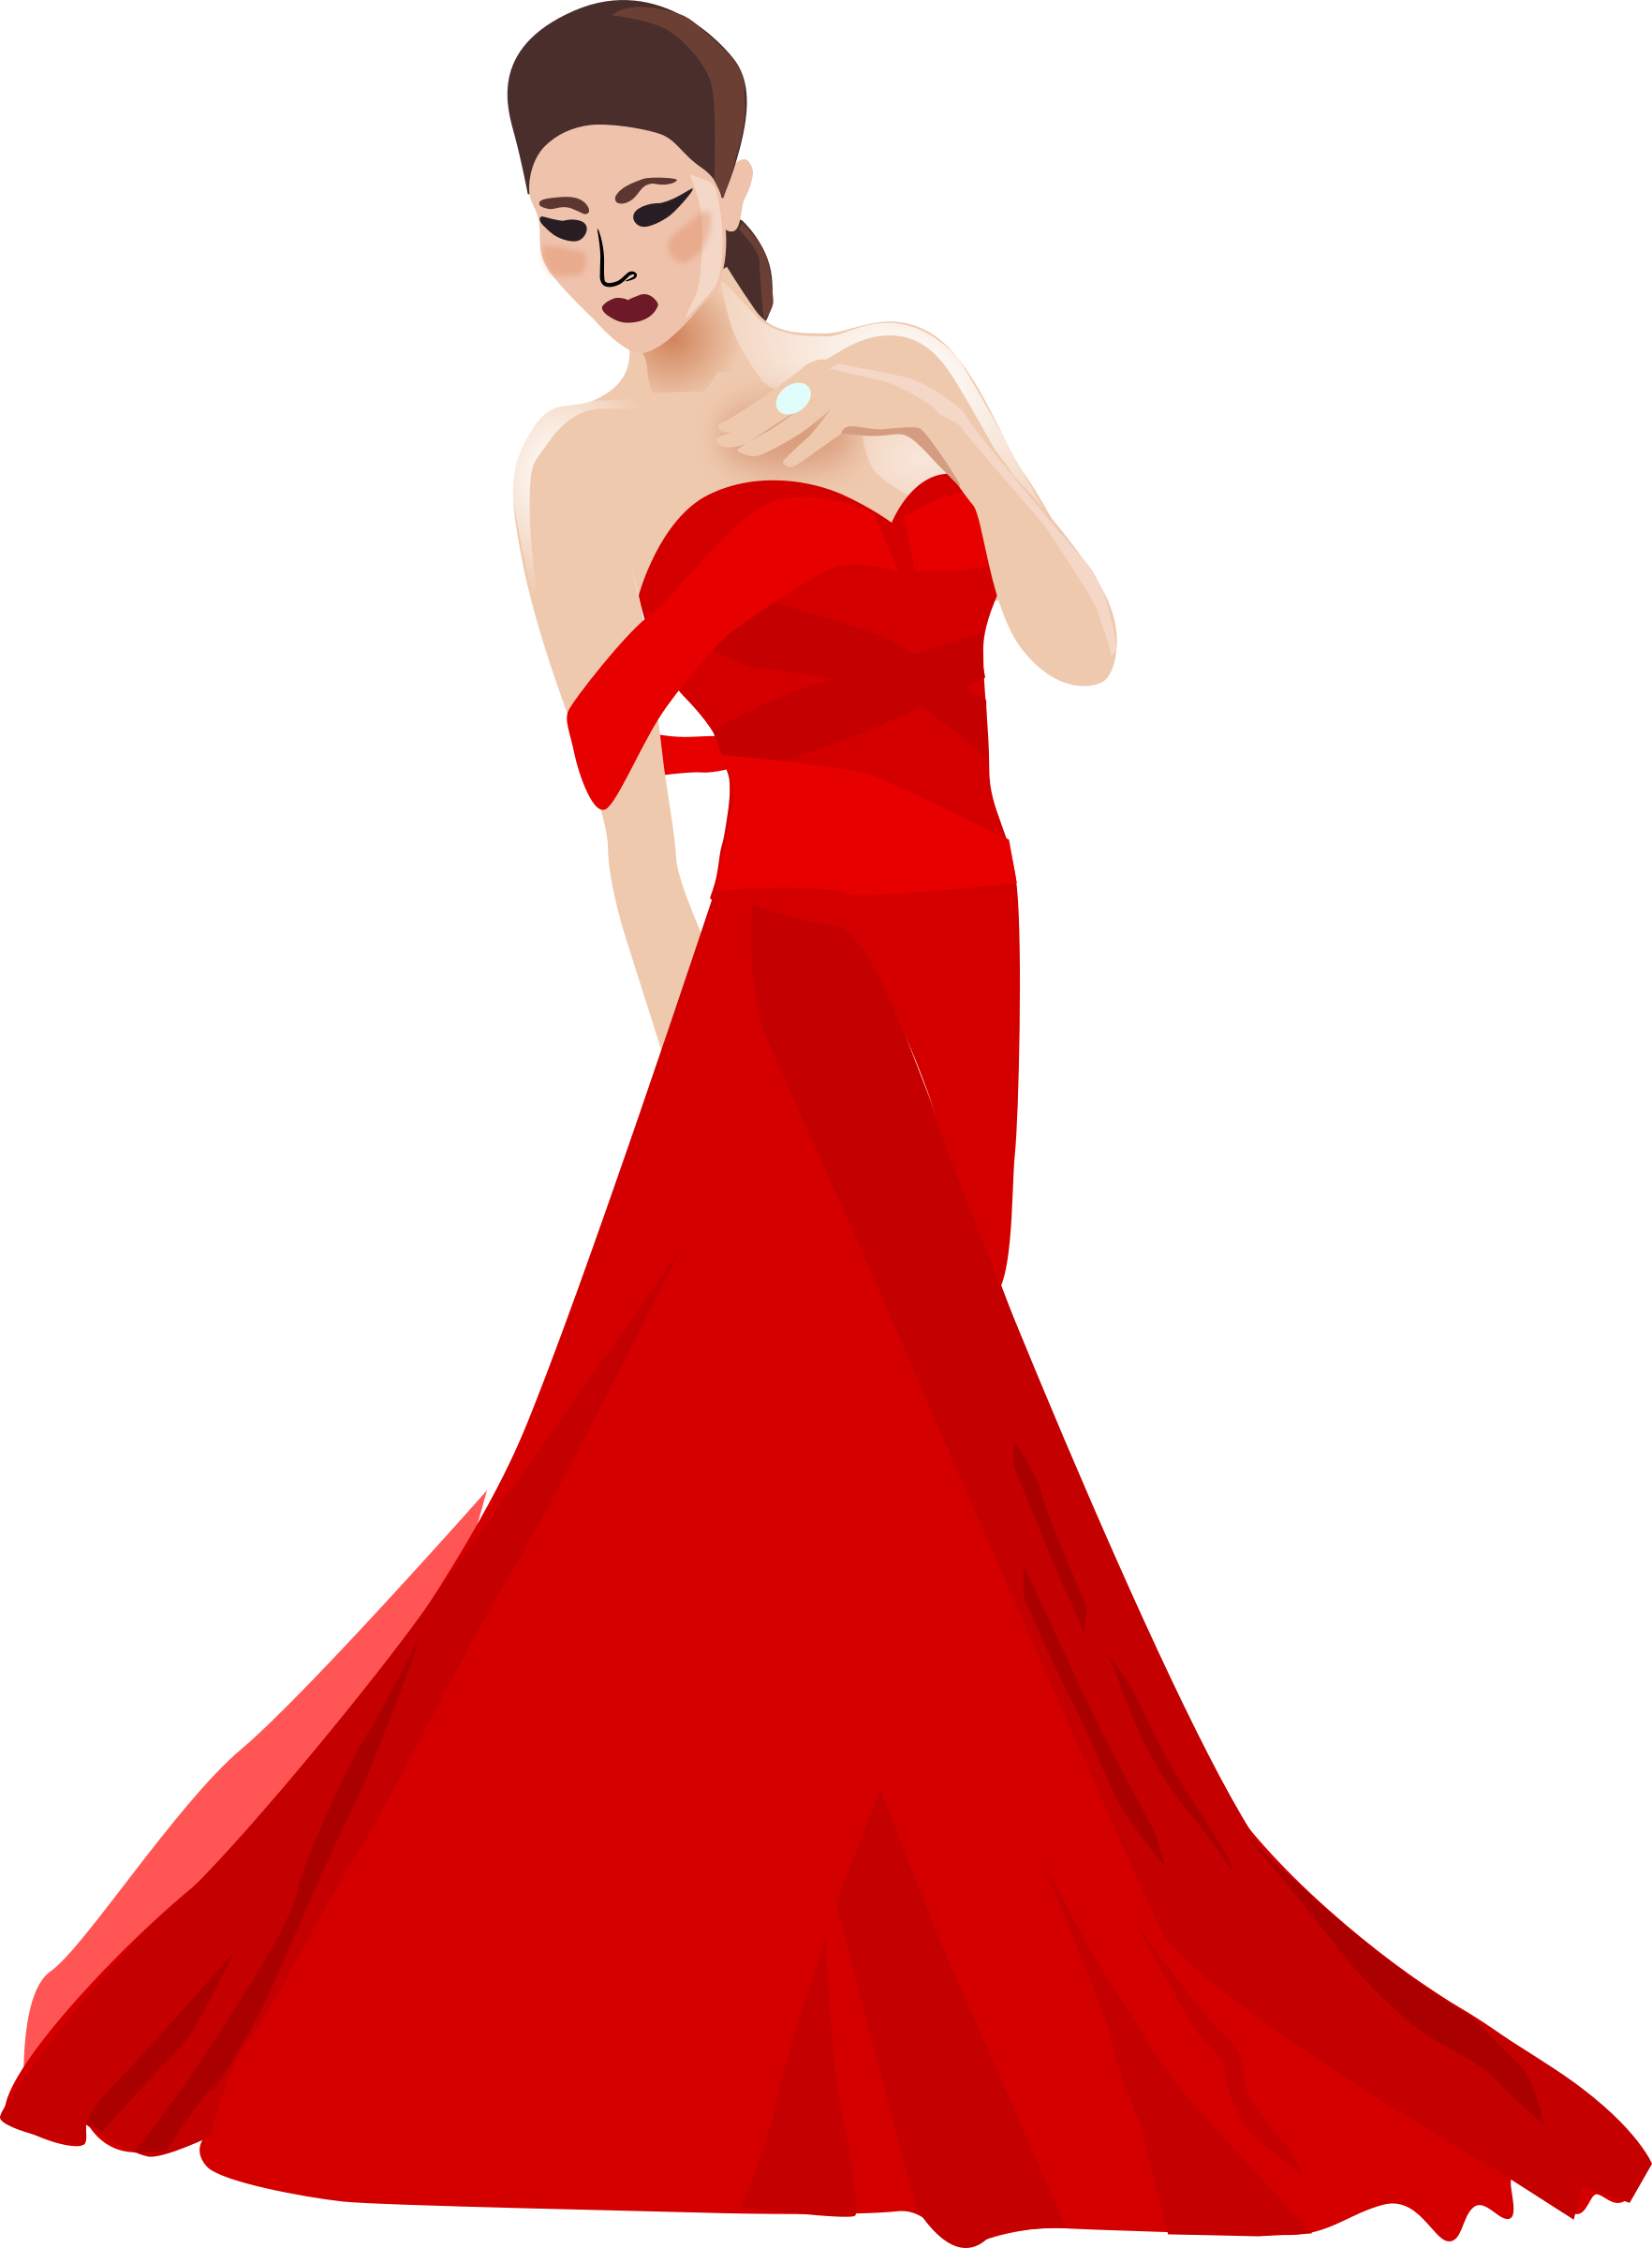 Red Dress clipart fancy clothes Chinese Chinese woman woman Clipart